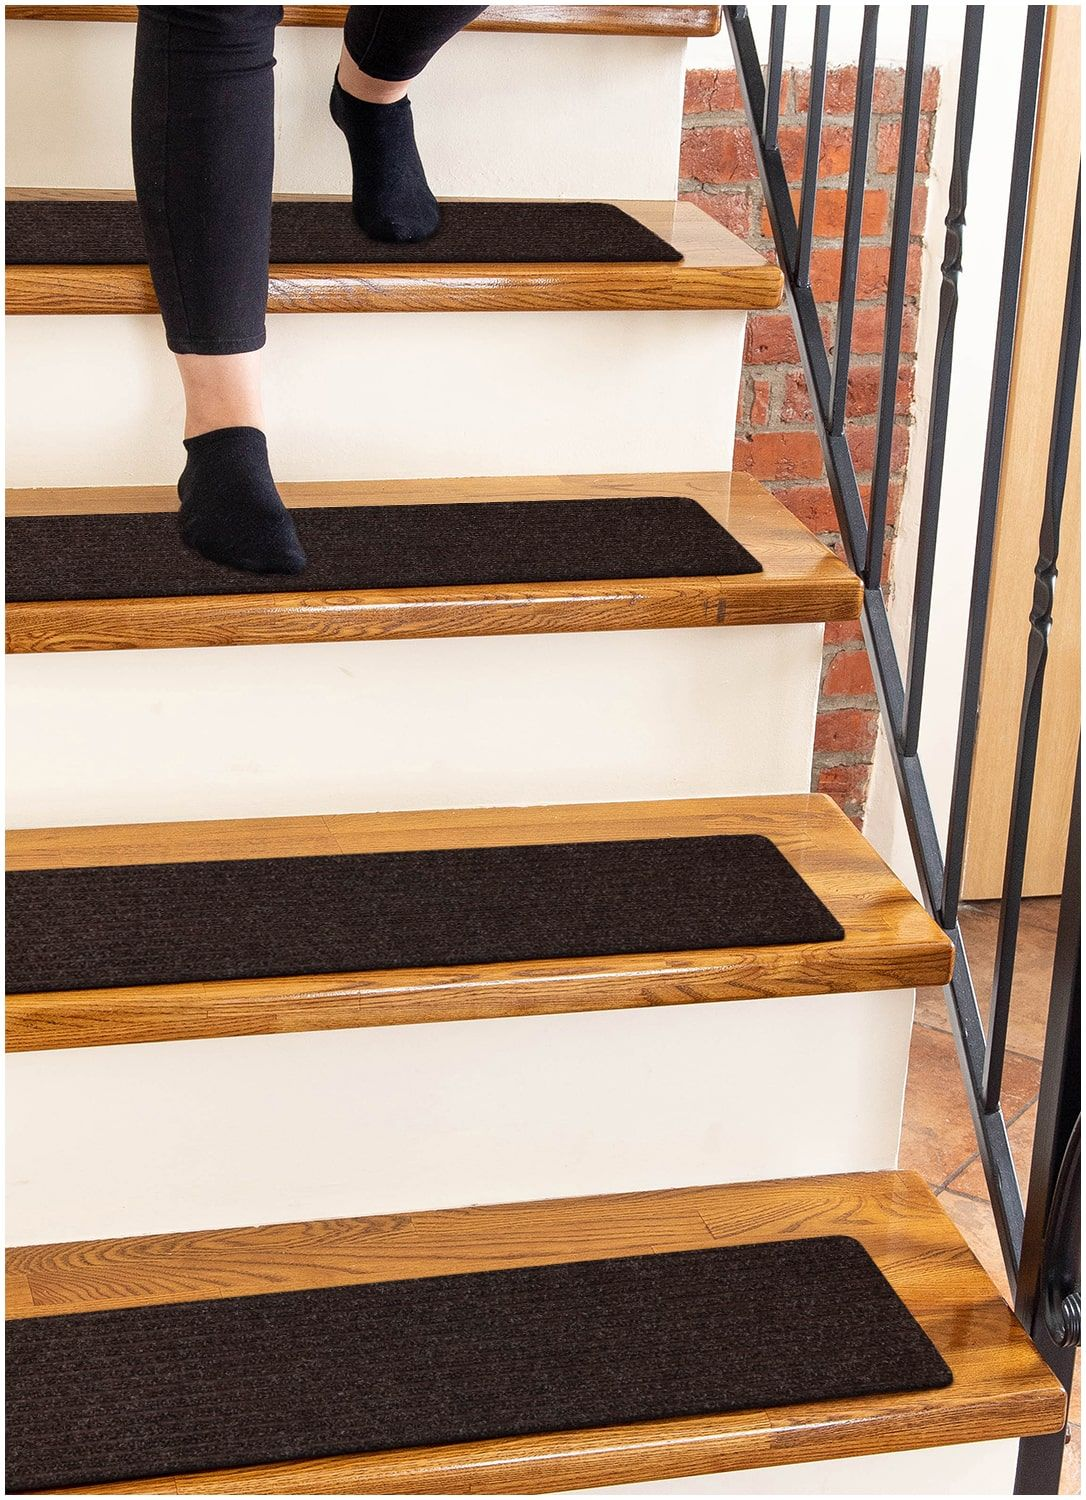 Non Slip Carpet Stair Treads With Adhesive Backing Brown 15 | Dog Slipping On Wood Stairs | Steps | Hardwood Floors | Self Adhering | Hardwood | Puppy Treads